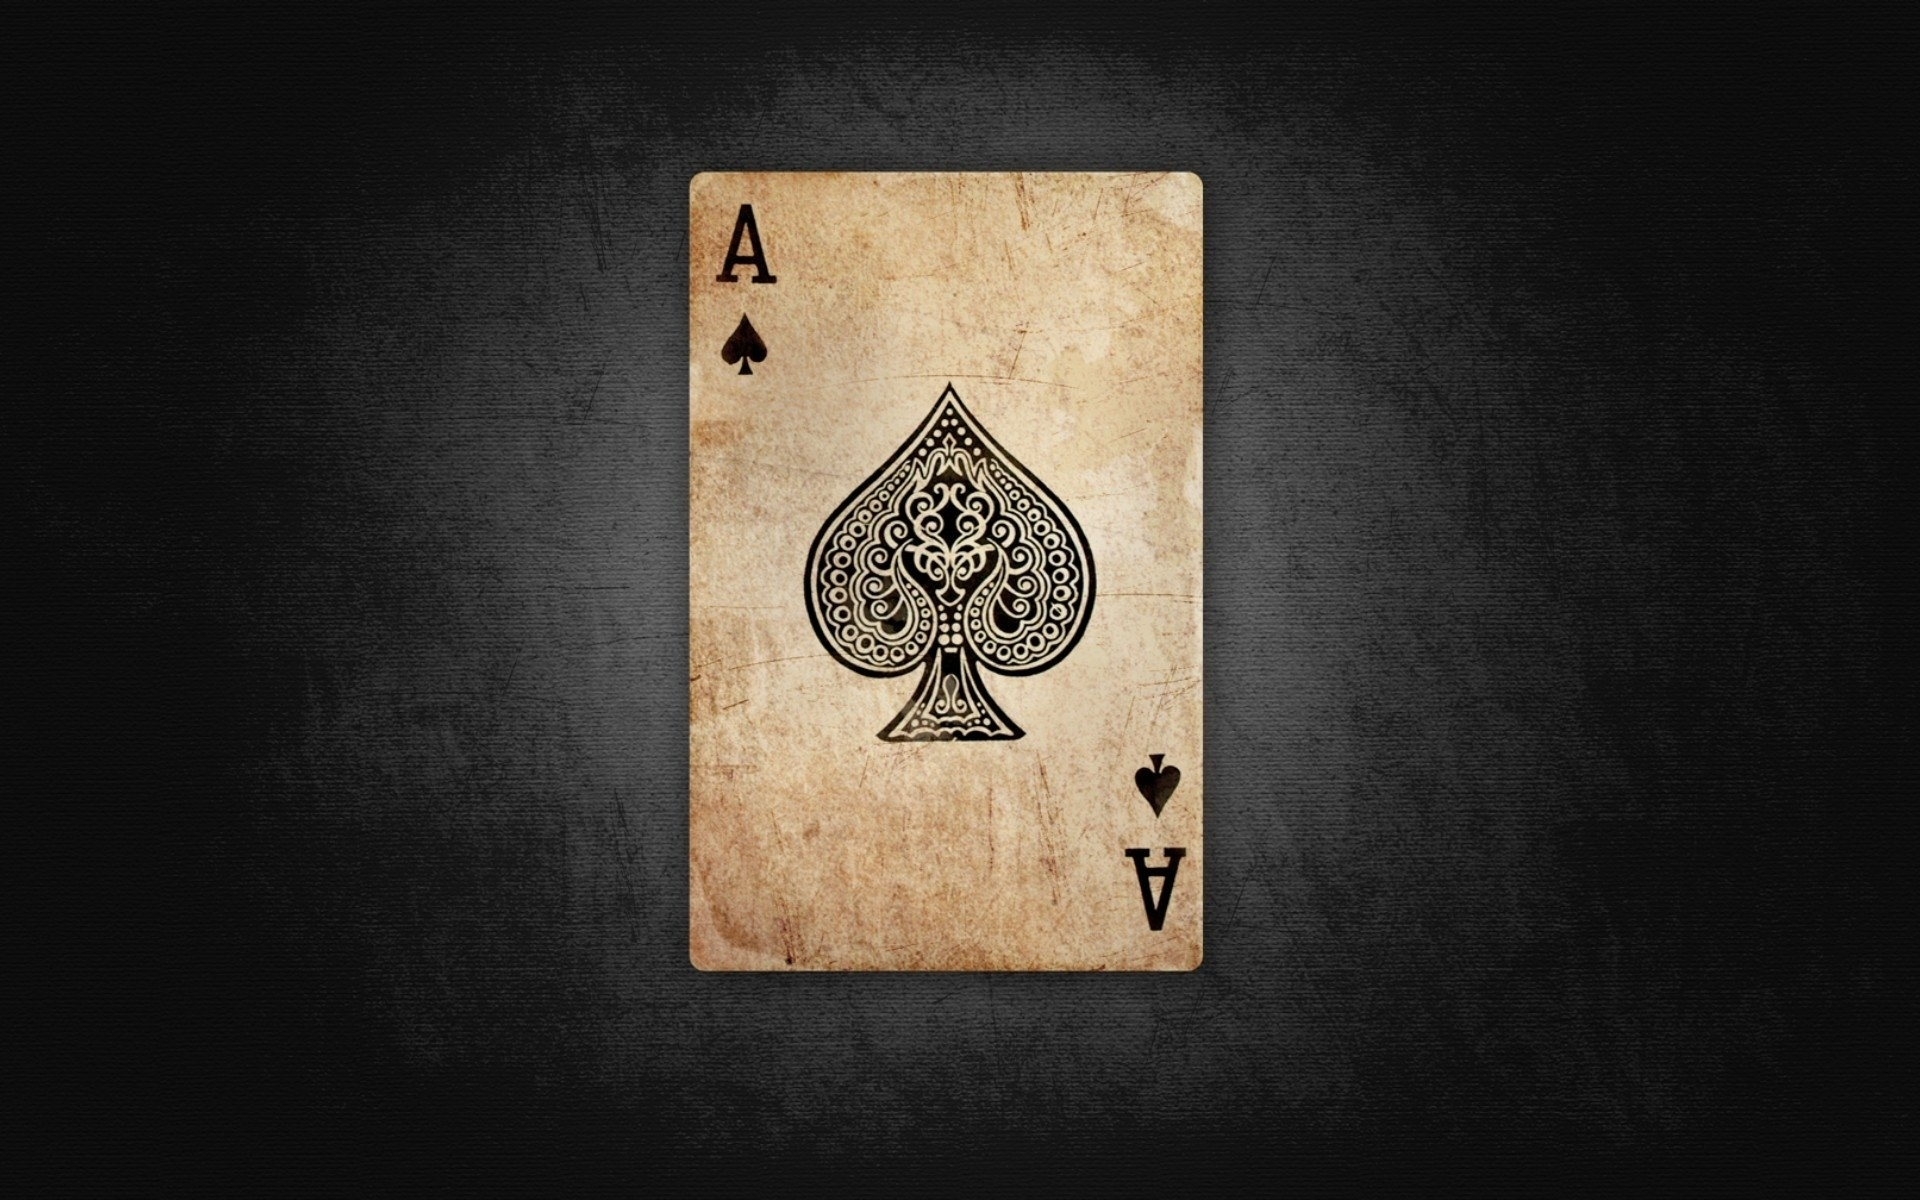 77 card hd wallpapers | background images - wallpaper abyss